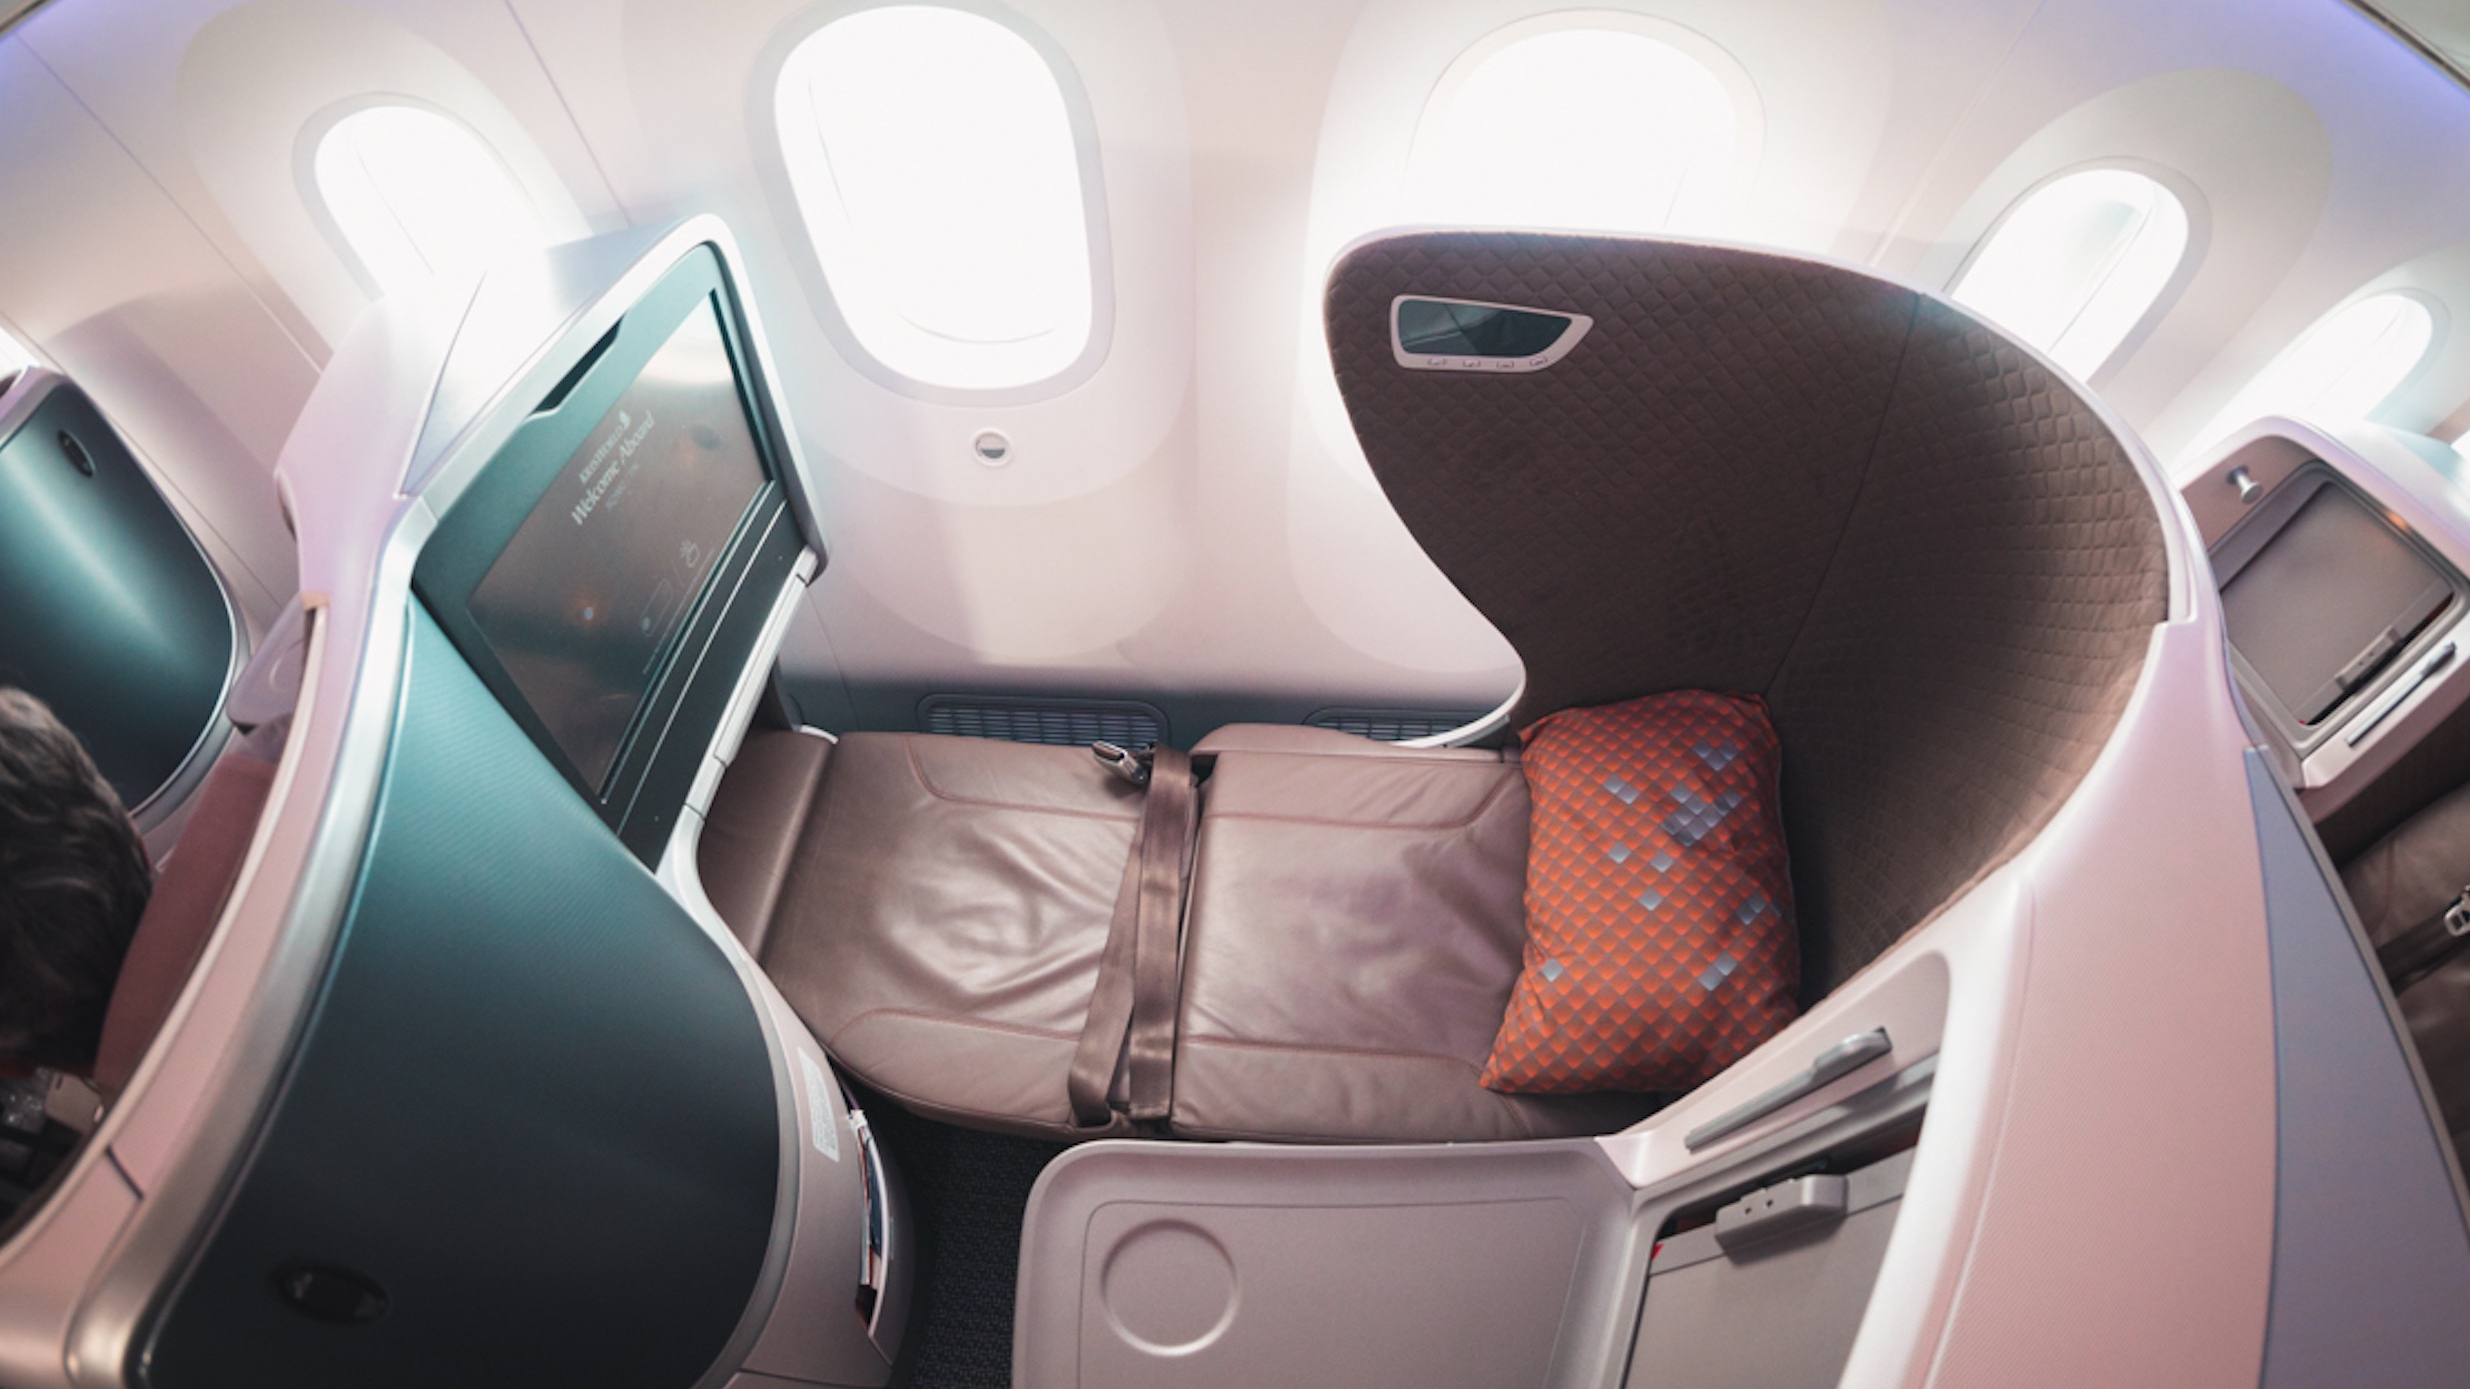 Singapore Airlines 787-10 Business Class seat